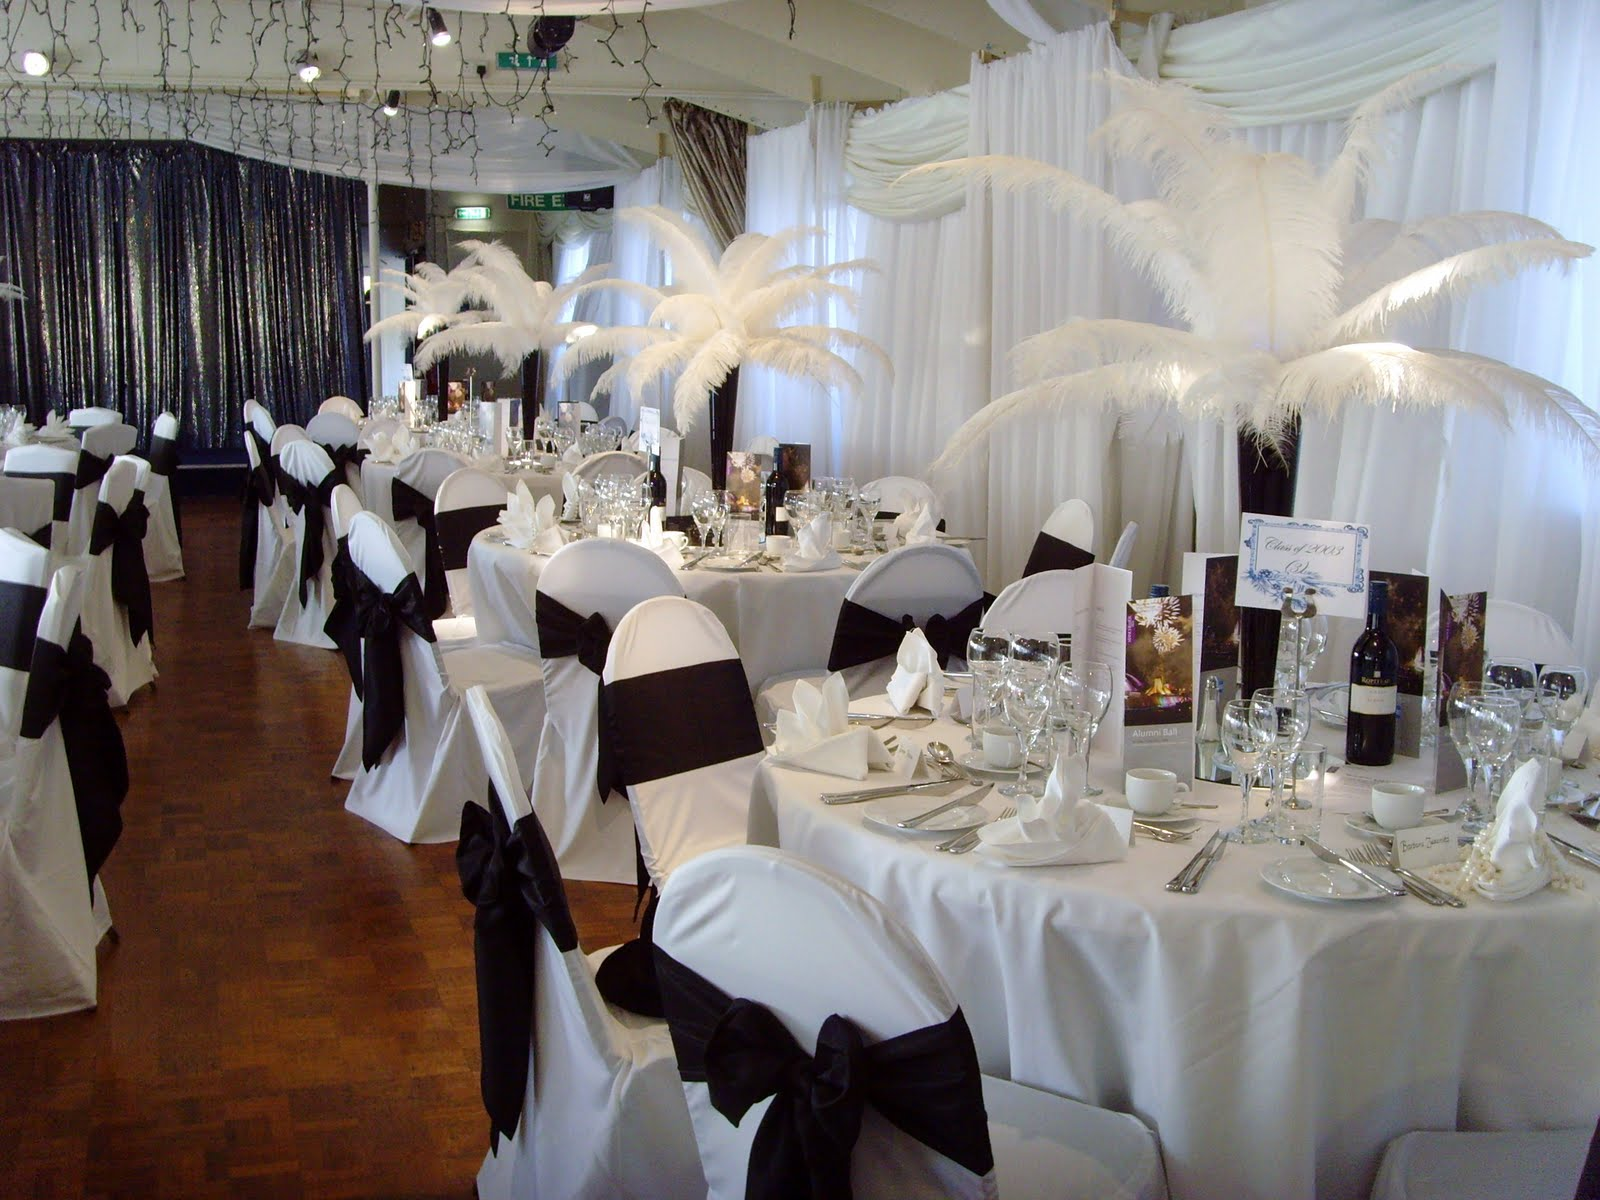 The best wedding decorations wedding venues decorations guide for Small wedding reception decorations